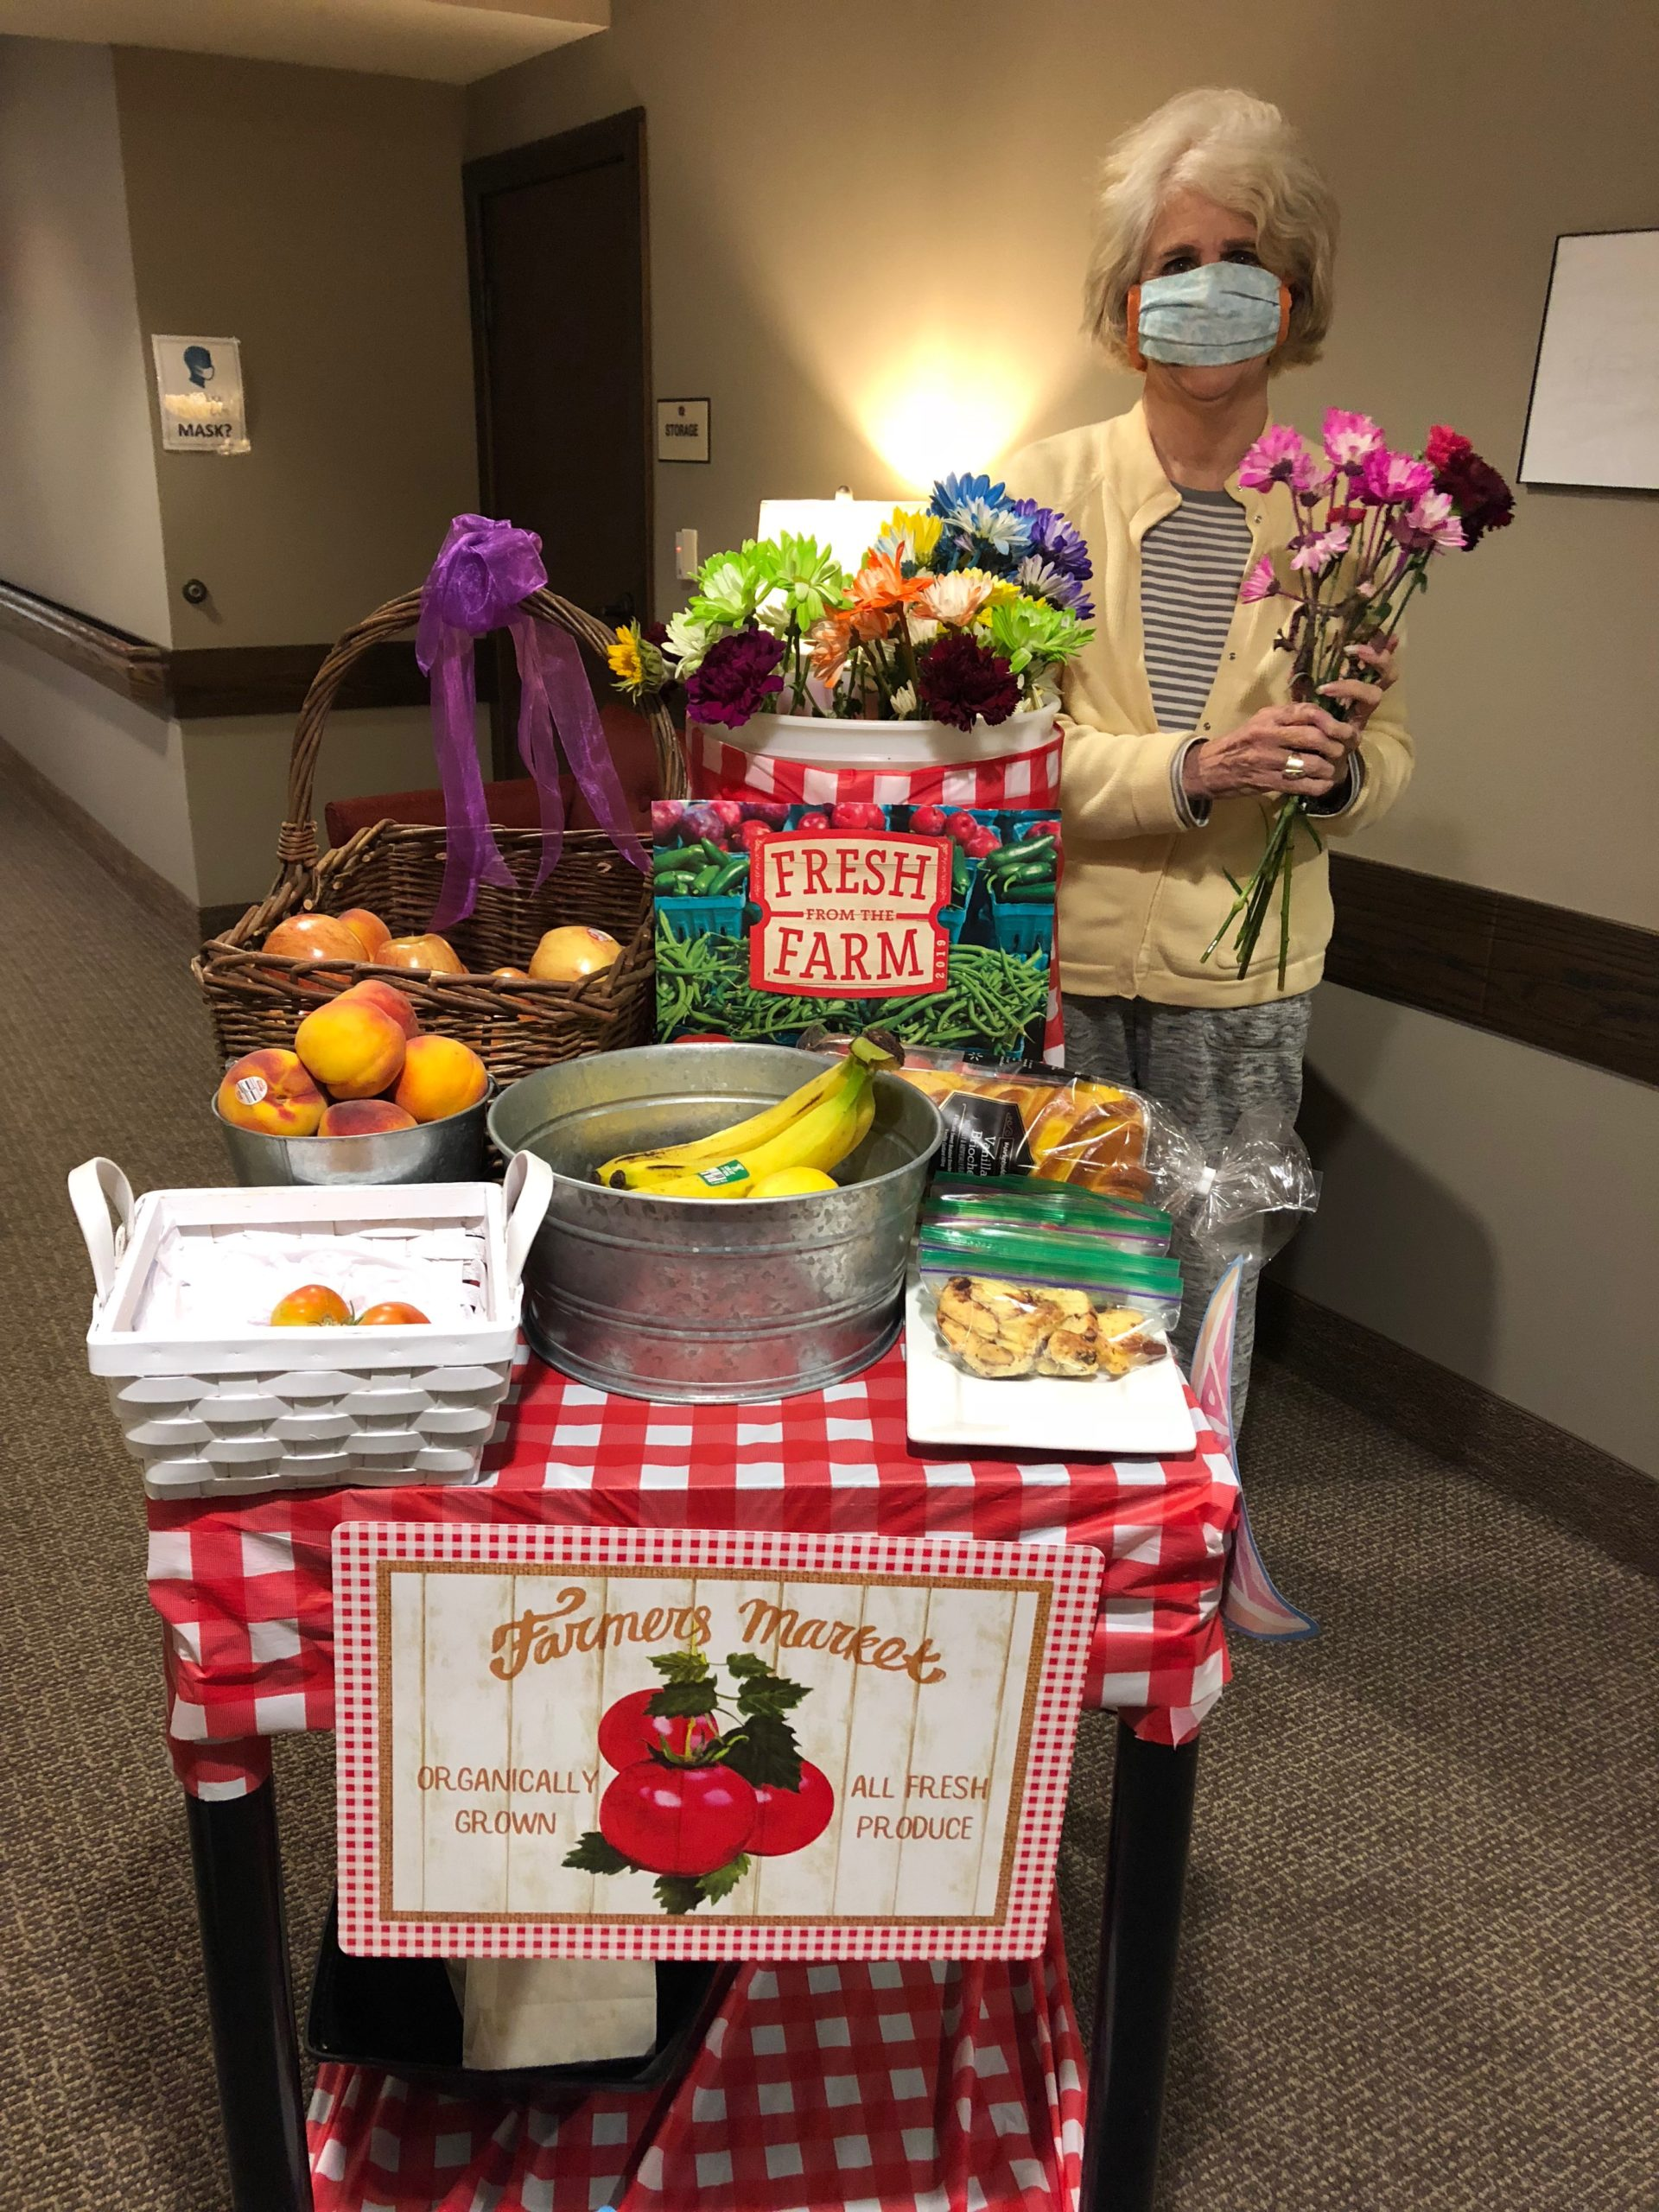 Gayle chooses colorful flowers and fresh produce from the Farmer's Market Cart! Residents were treated to a delicious lunch using local fruits and vegetables for a Farmer's Market themed day!